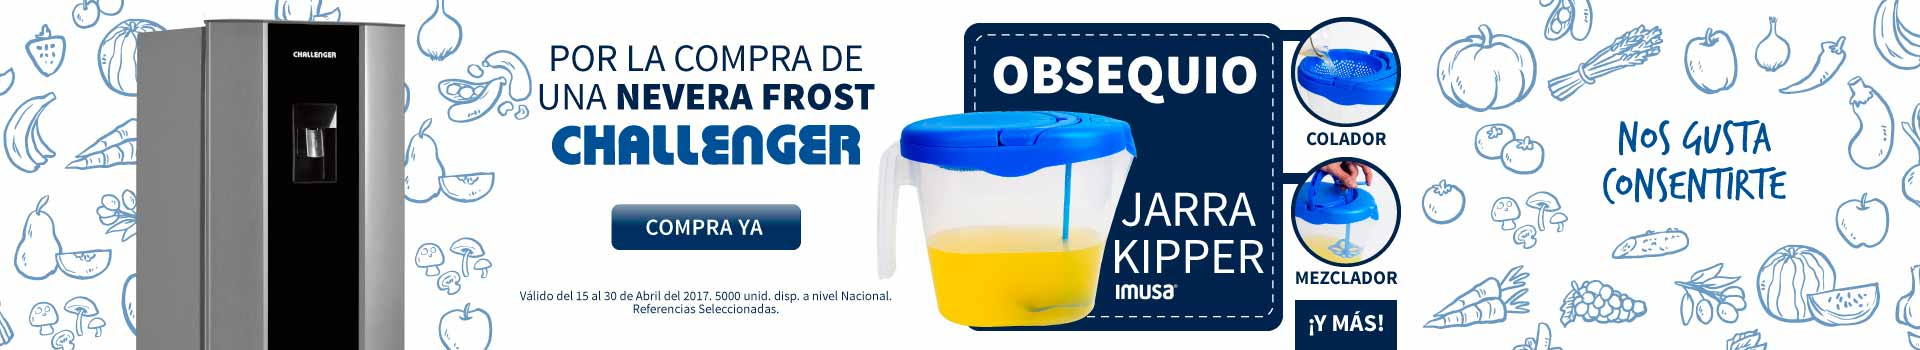 CAT ELECT - abril 15 - Obsequios CHALLENGER Neveras FROST